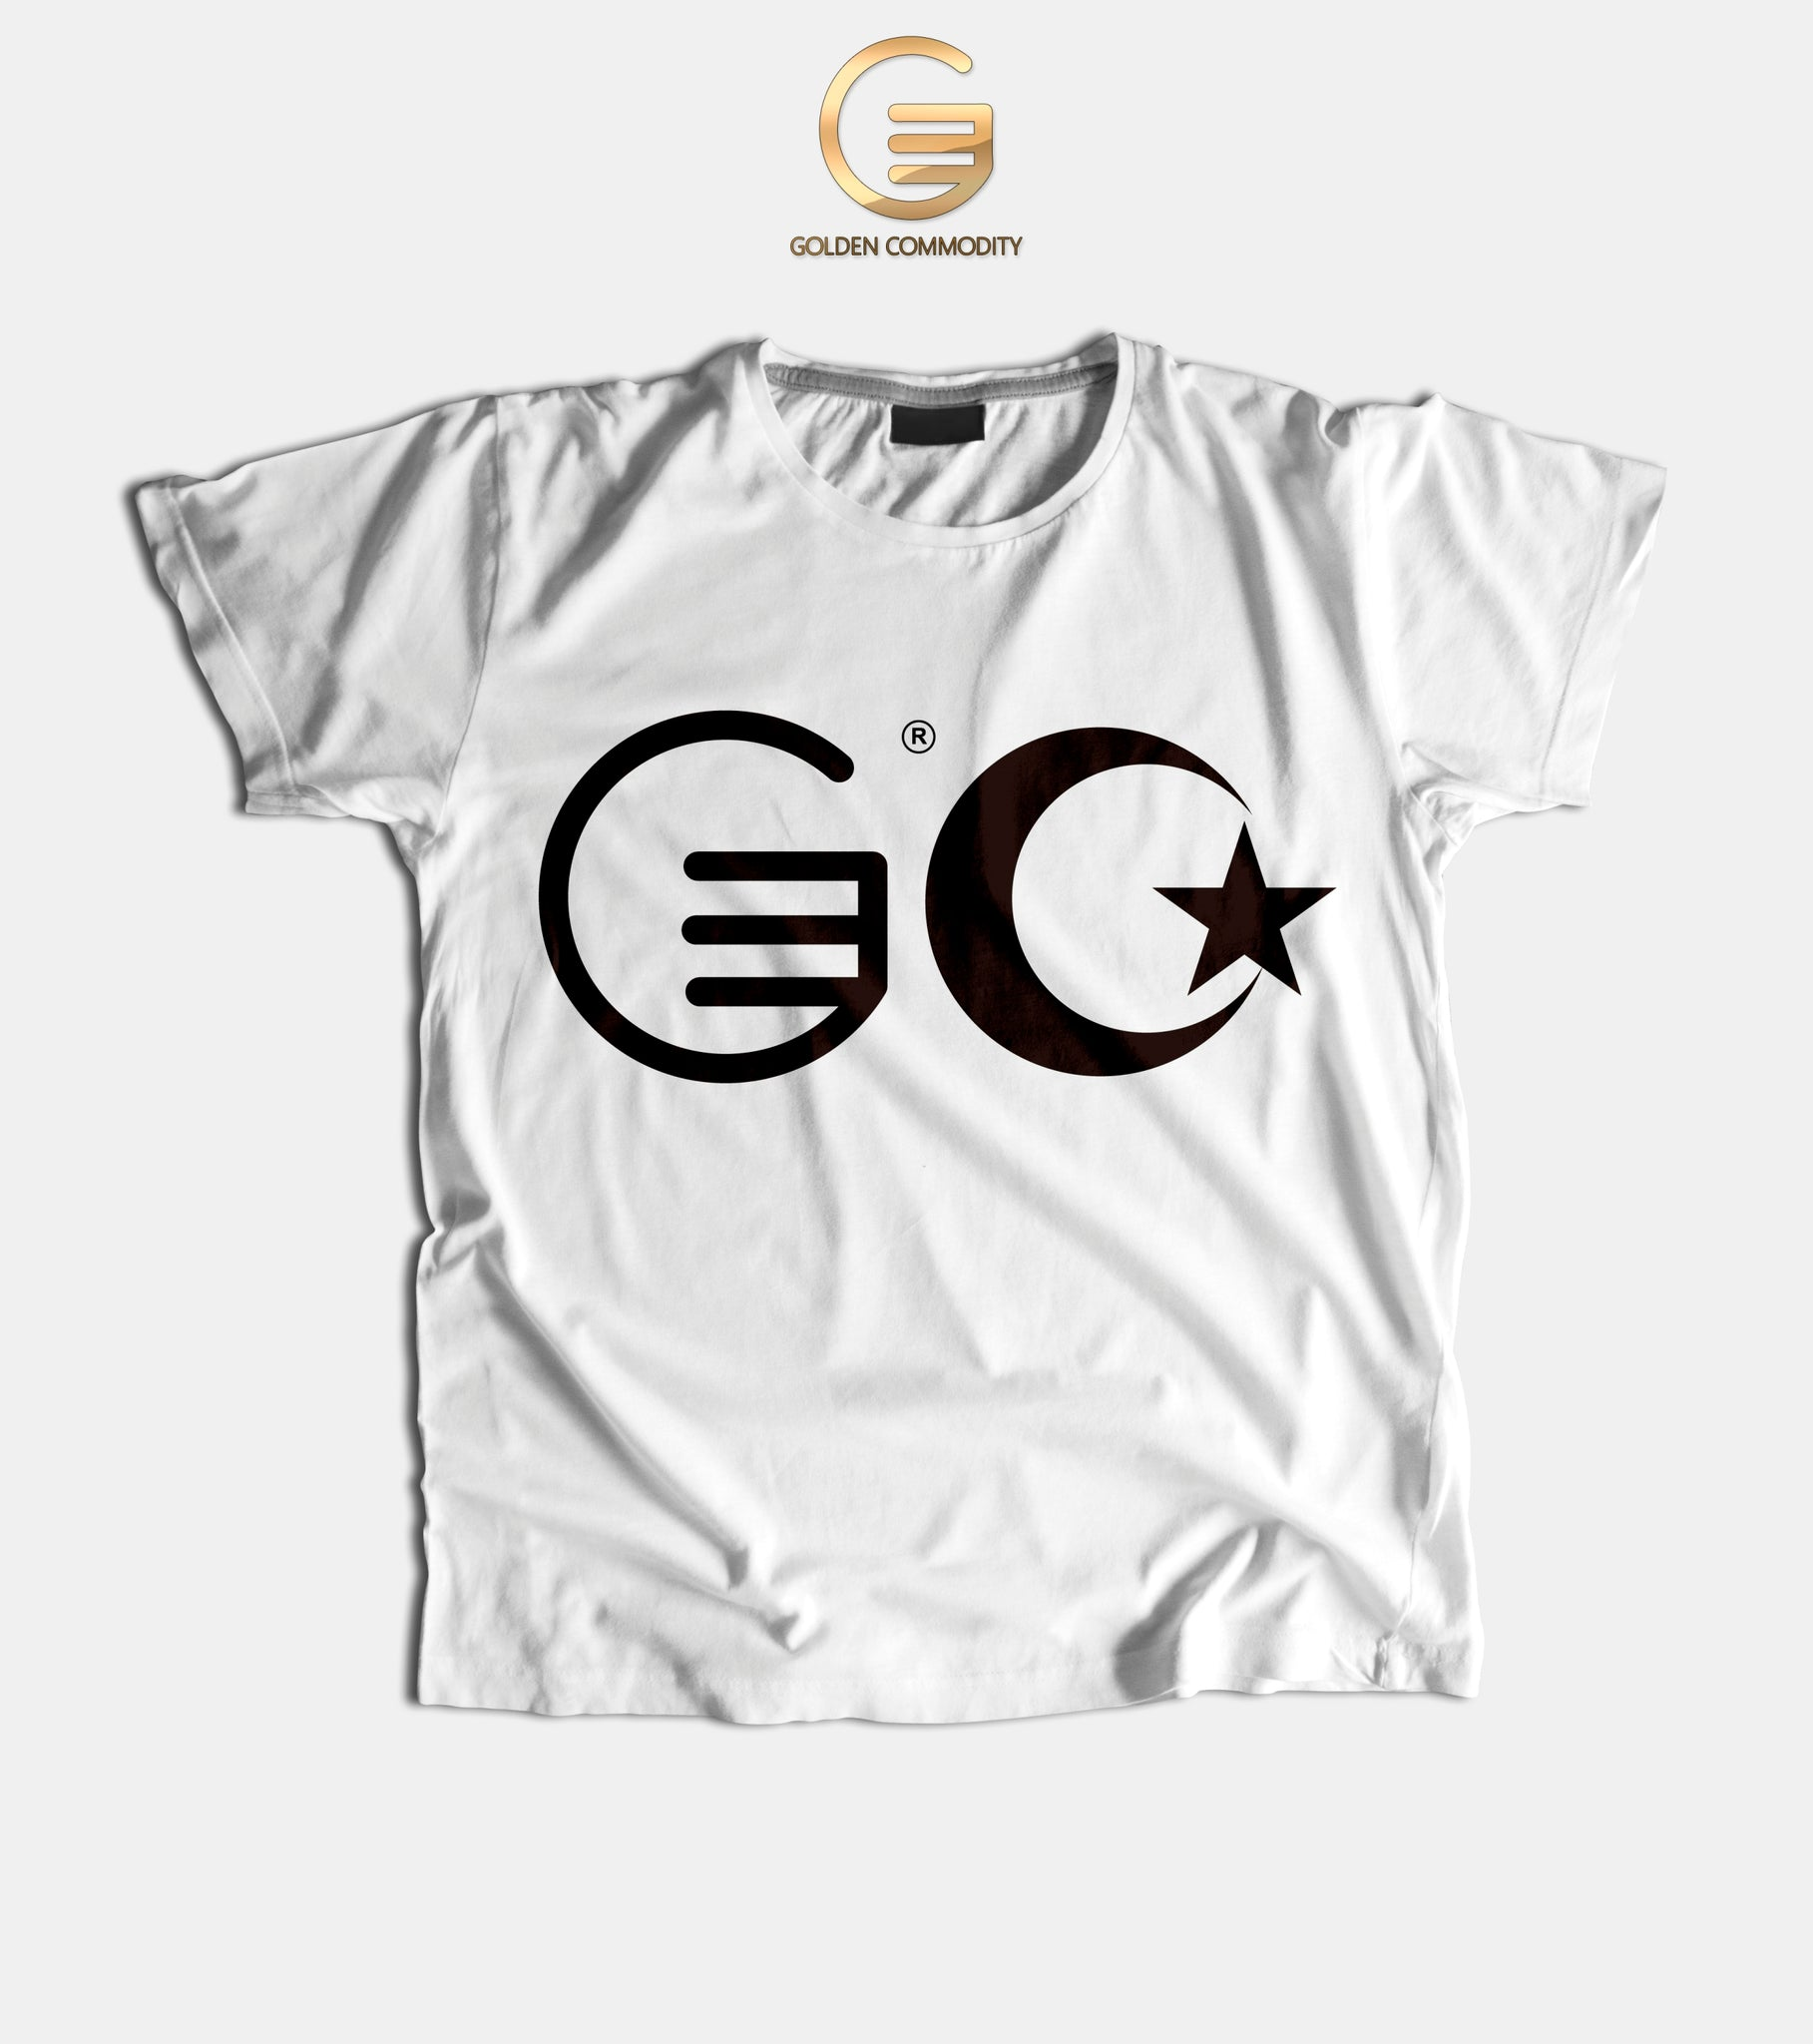 G & A Crescent Women's T-Shirts